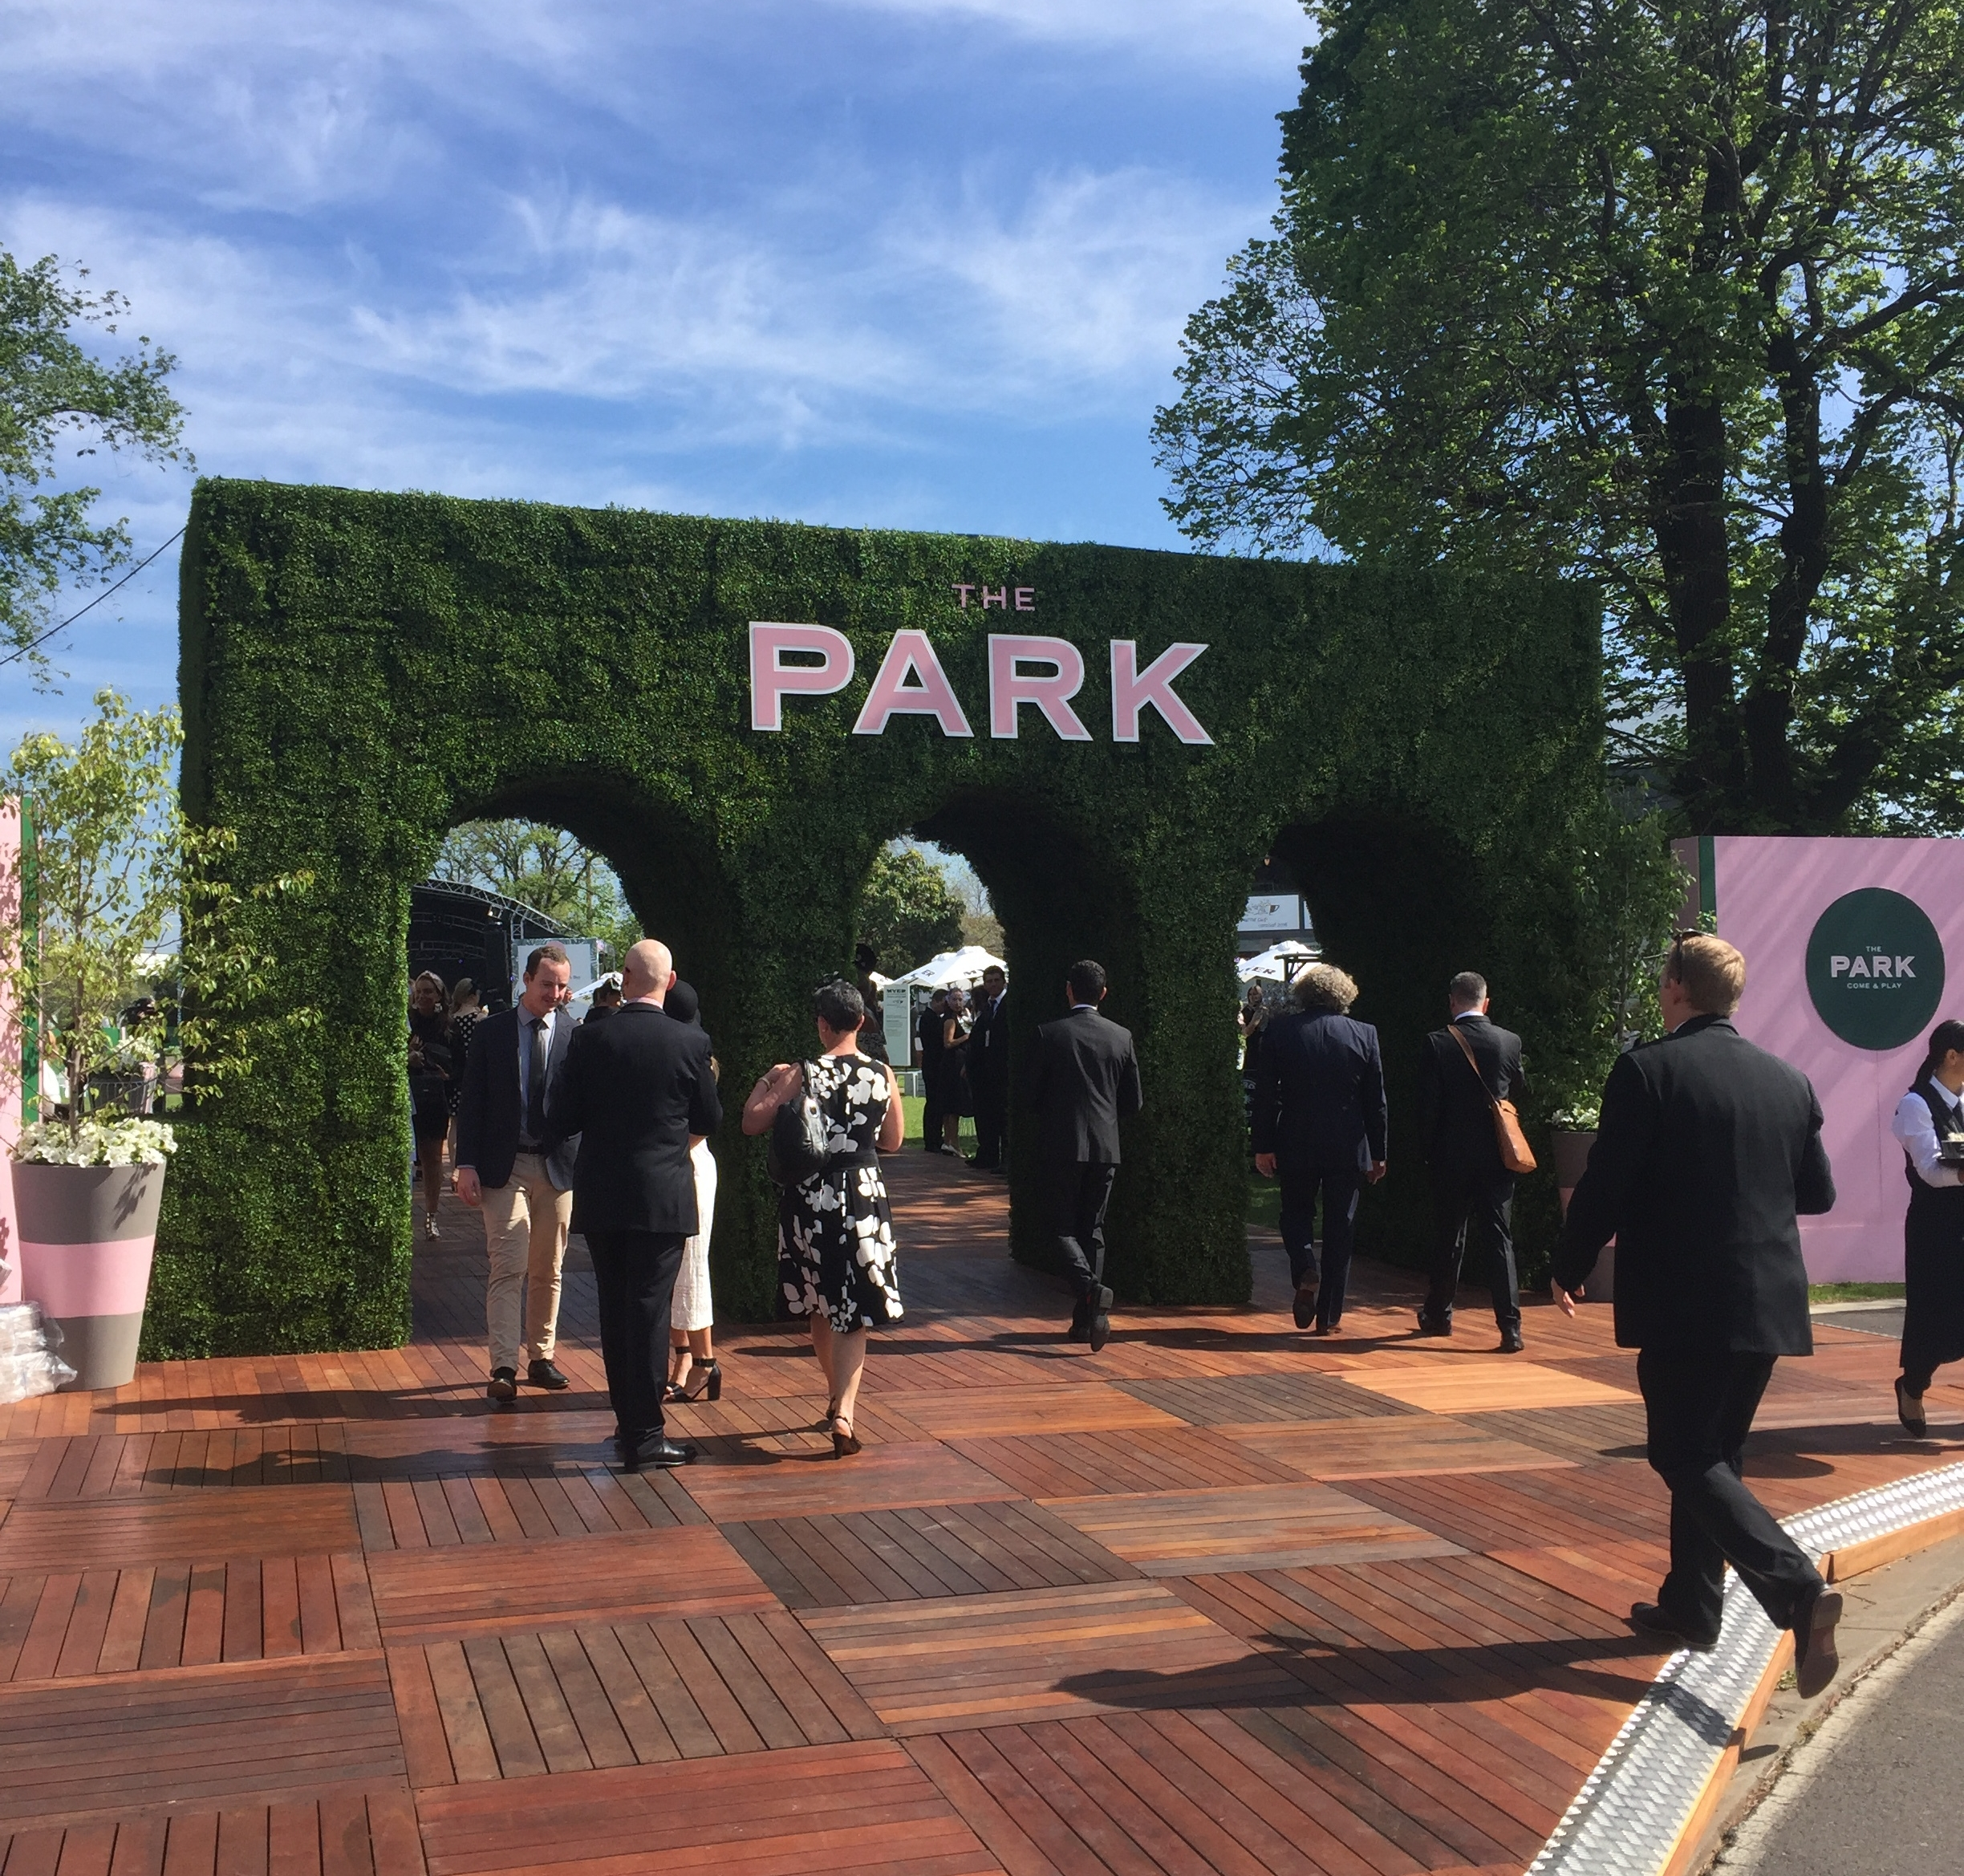 The new and improved 'The Park' where we hung out for the Spring Carnival